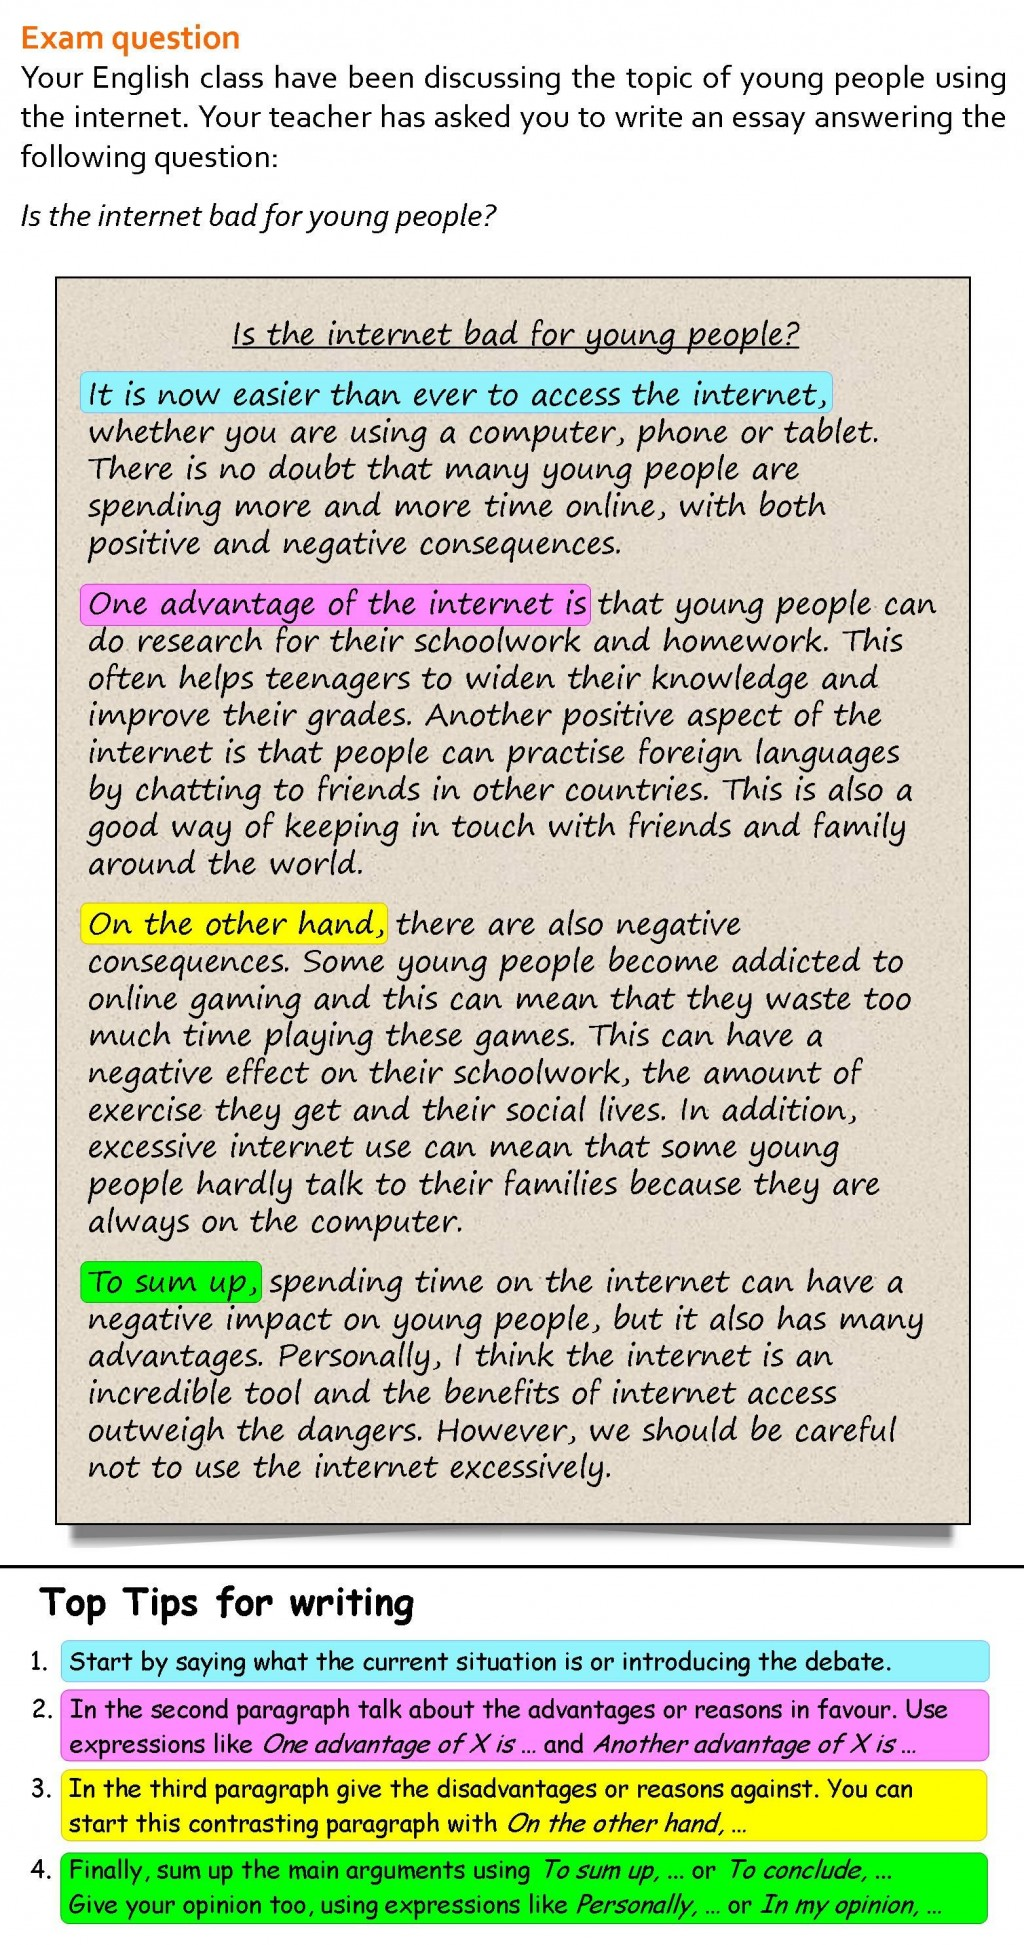 005 Internet Essay Example Wondrous Privacy Introduction Censorship Topics Chatting In Urdu Large